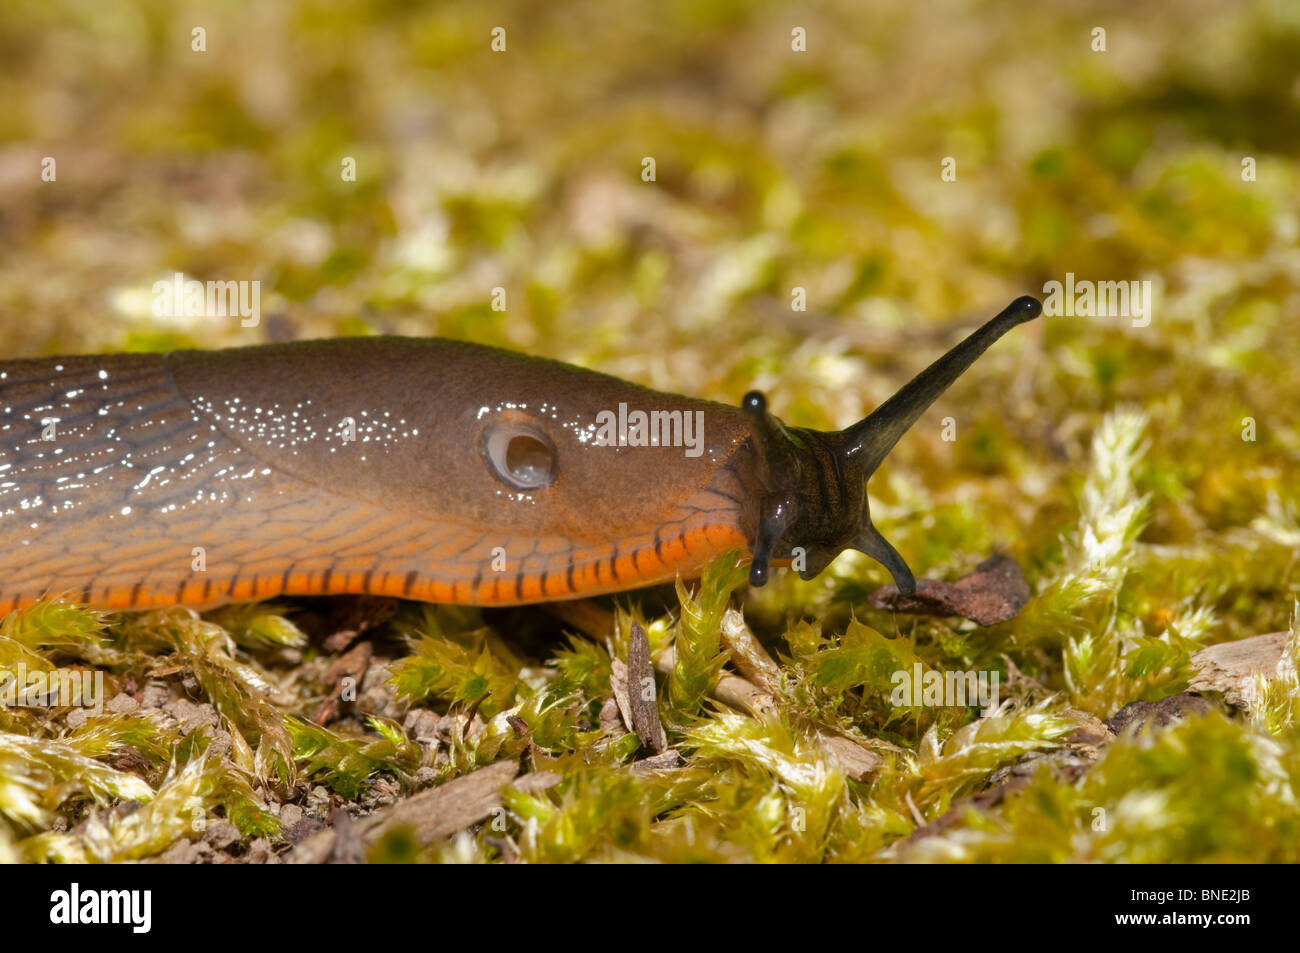 Orange Slug Stock Photos & Orange Slug Stock Images - Alamy